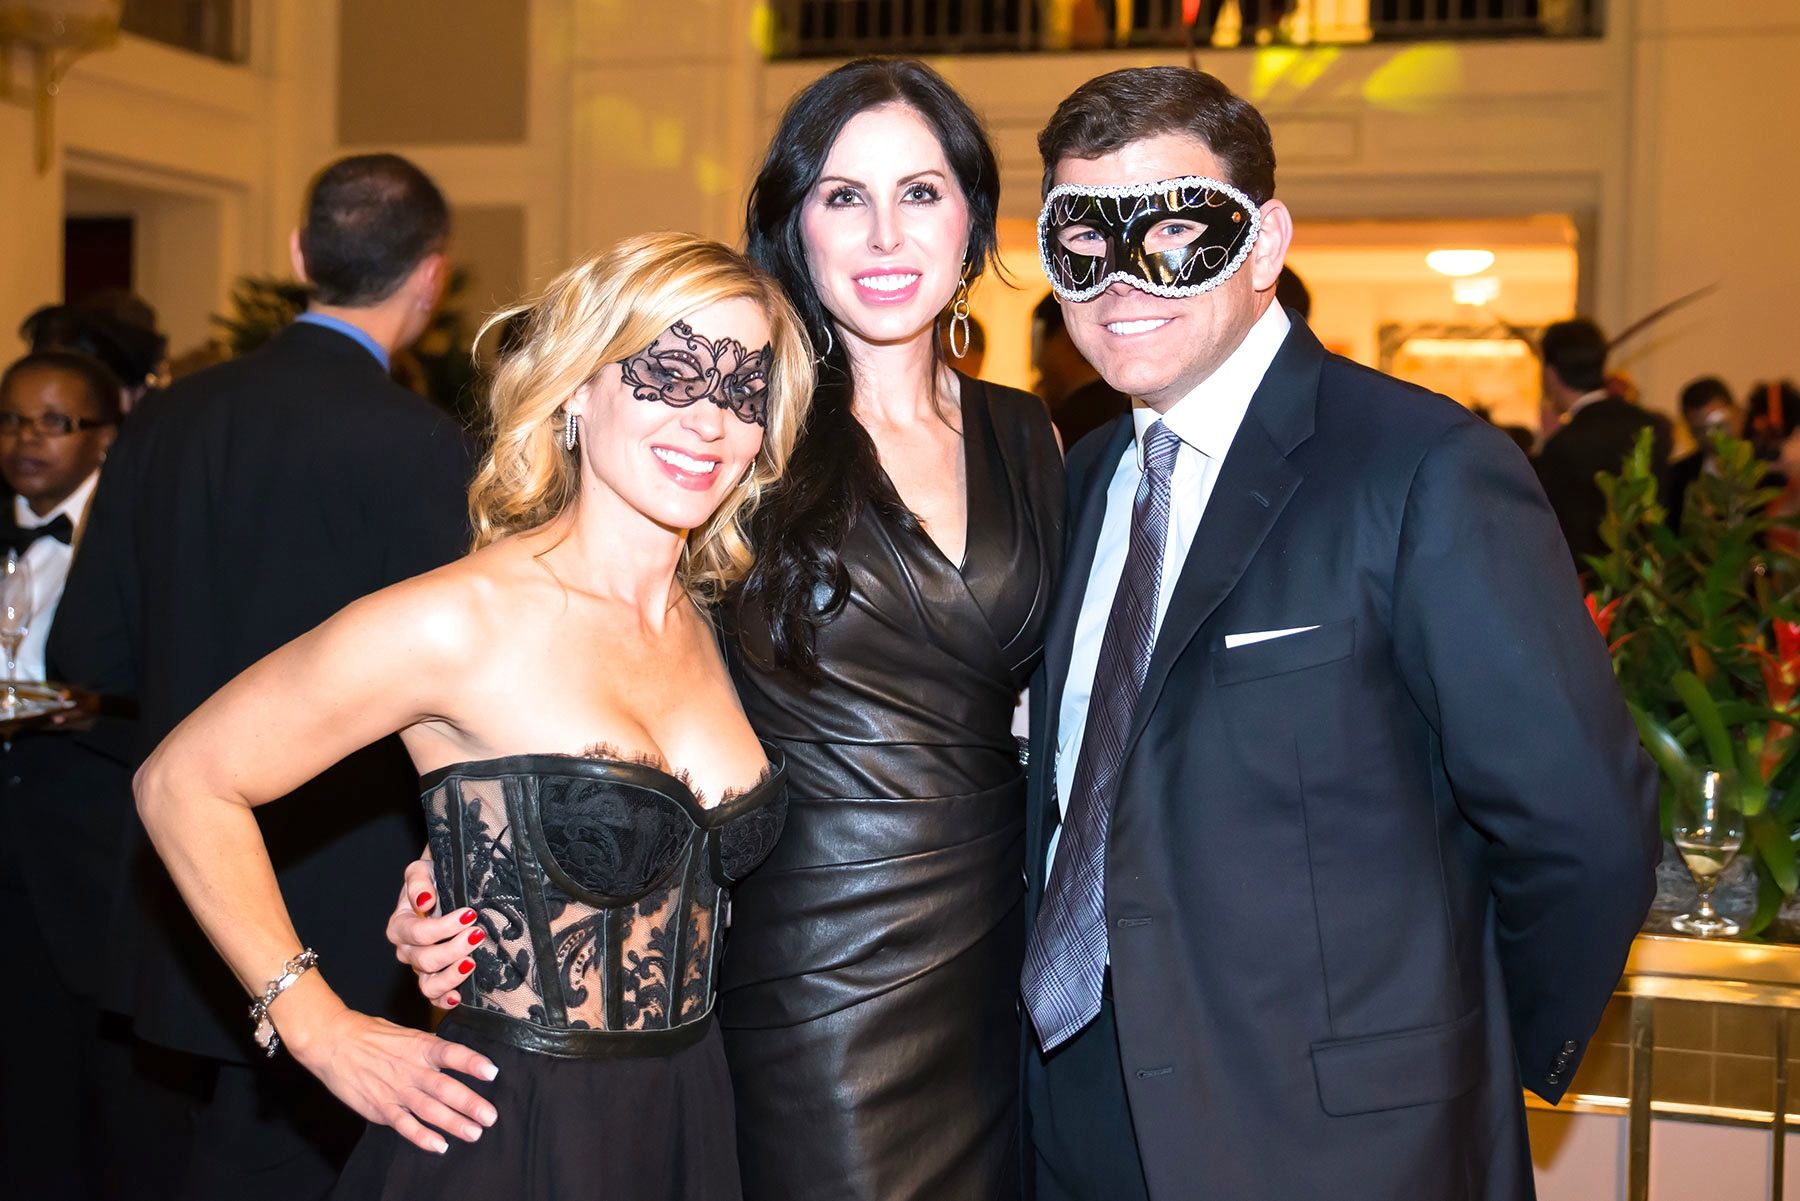 on chair dance custom poker tables and chairs unmask the night! | hollywood potomac